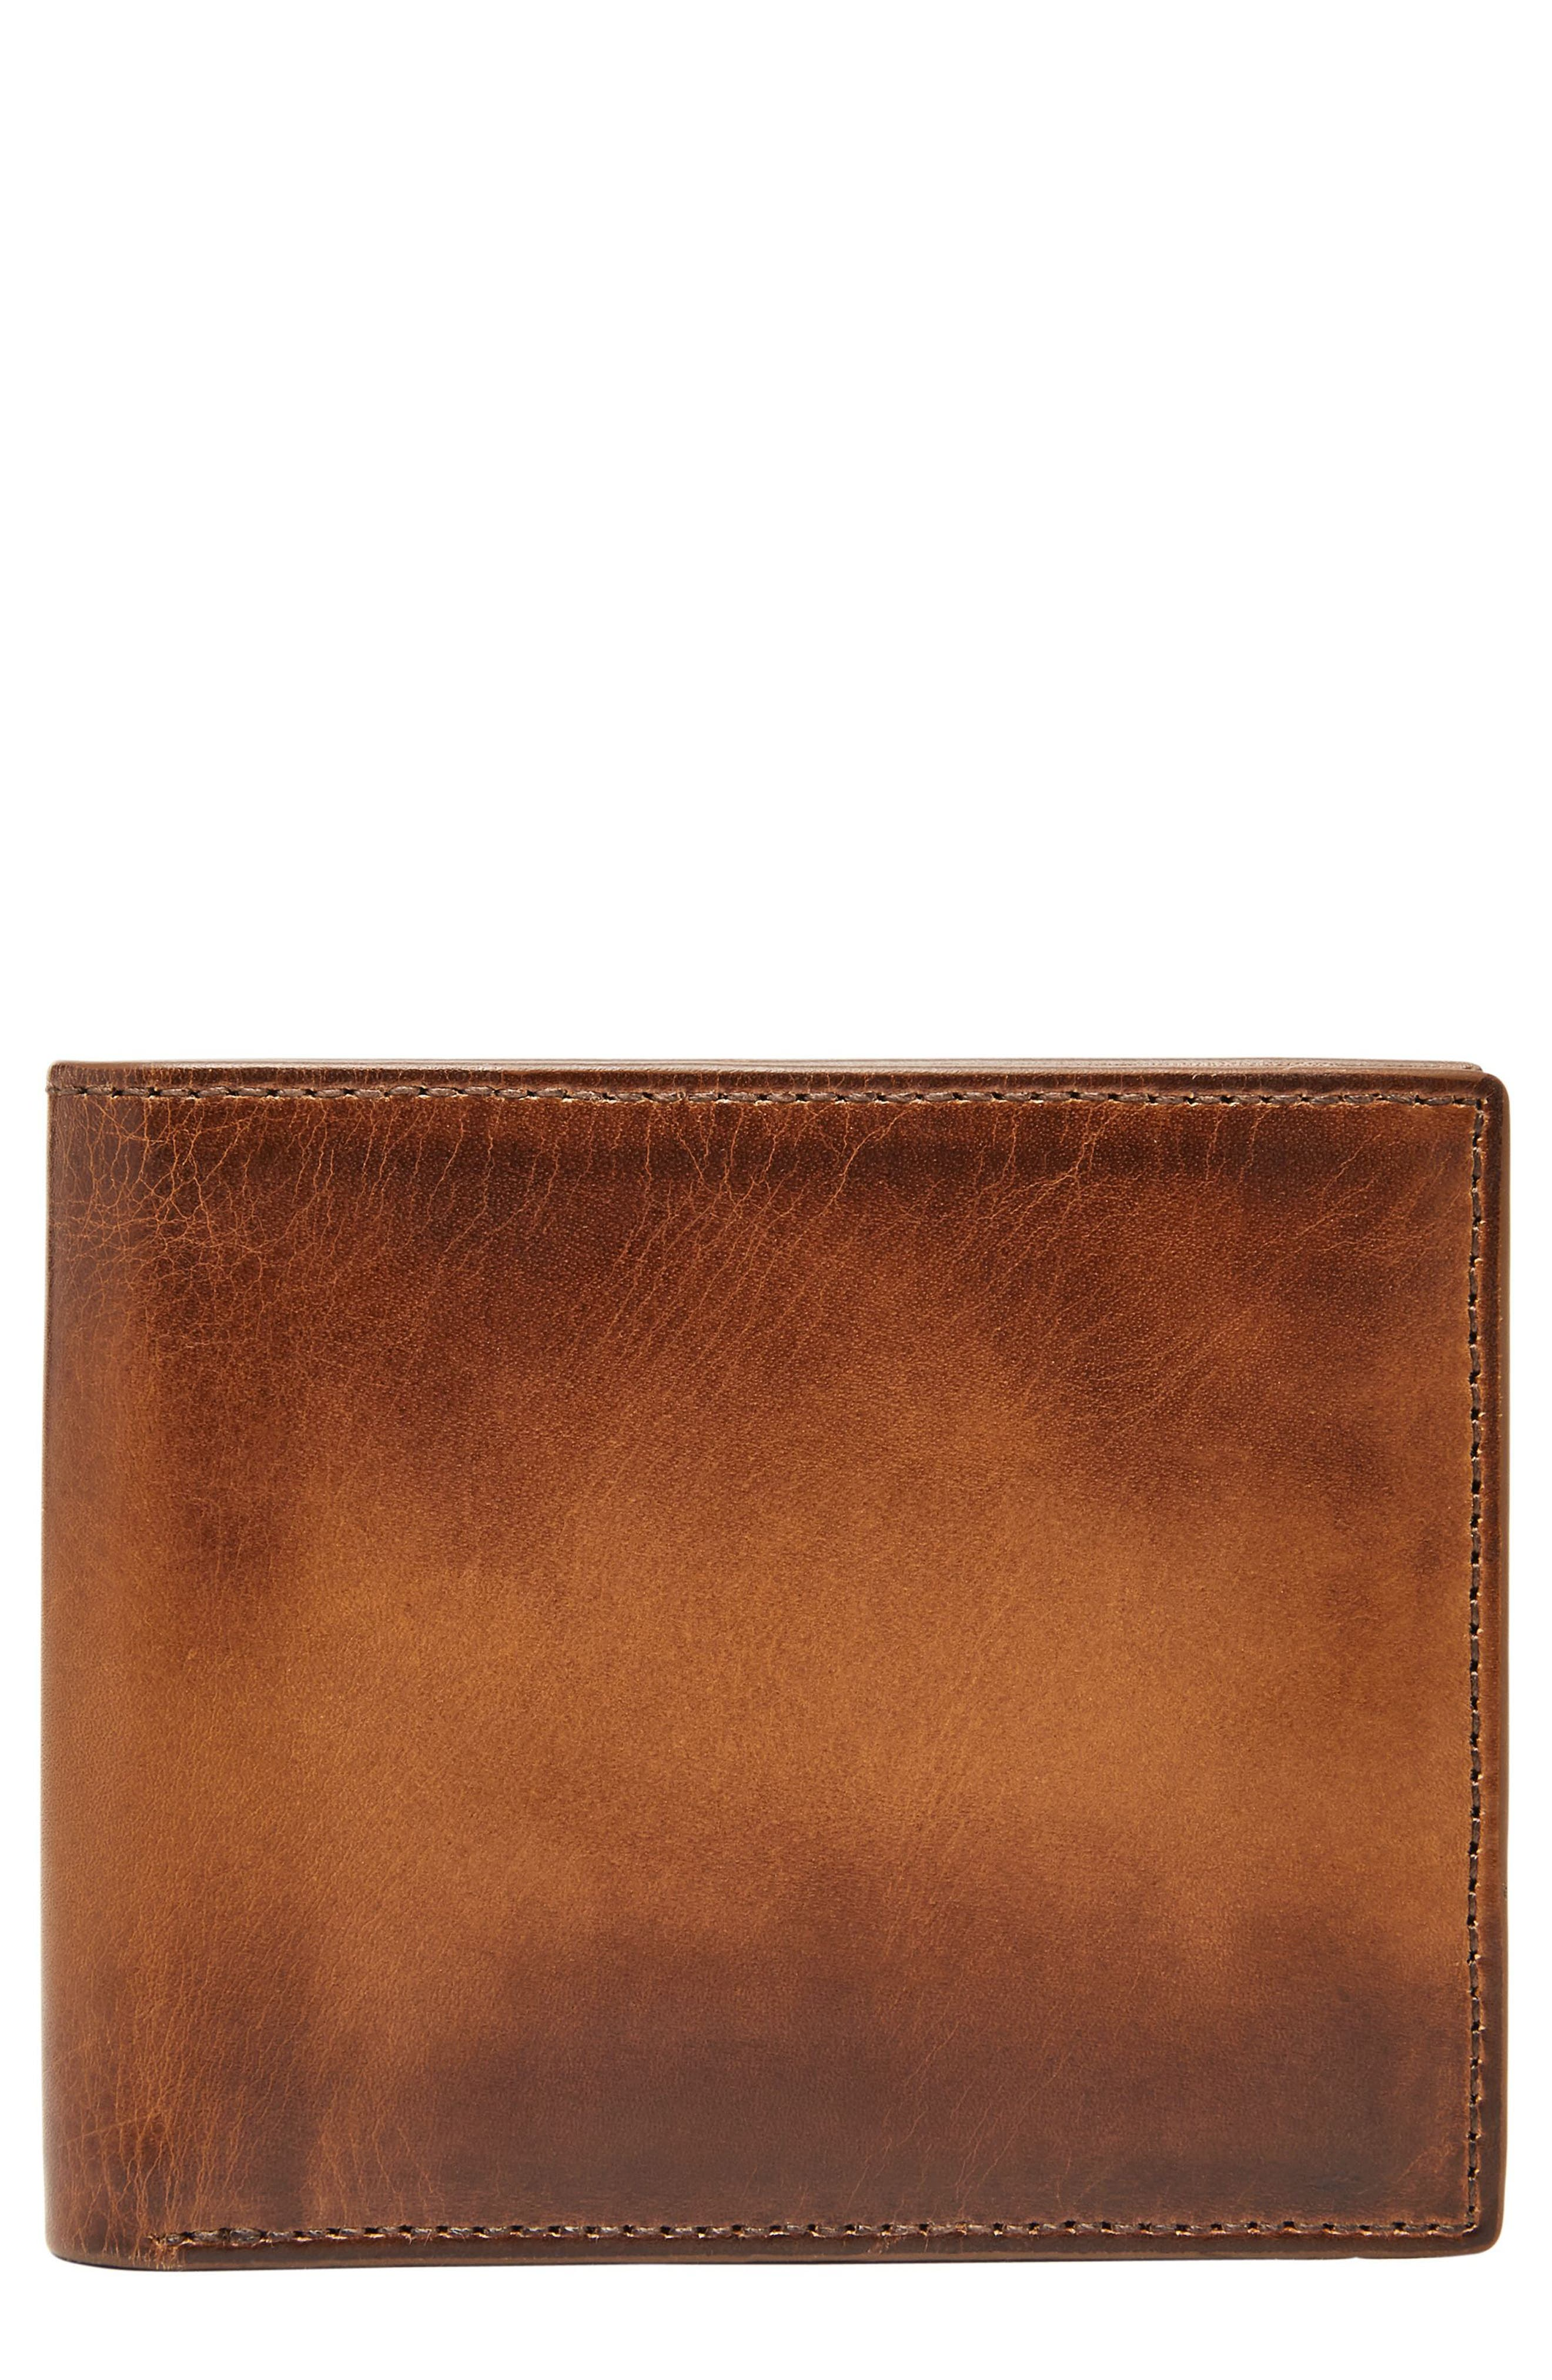 Paul Leather Wallet,                             Main thumbnail 1, color,                             Cognac